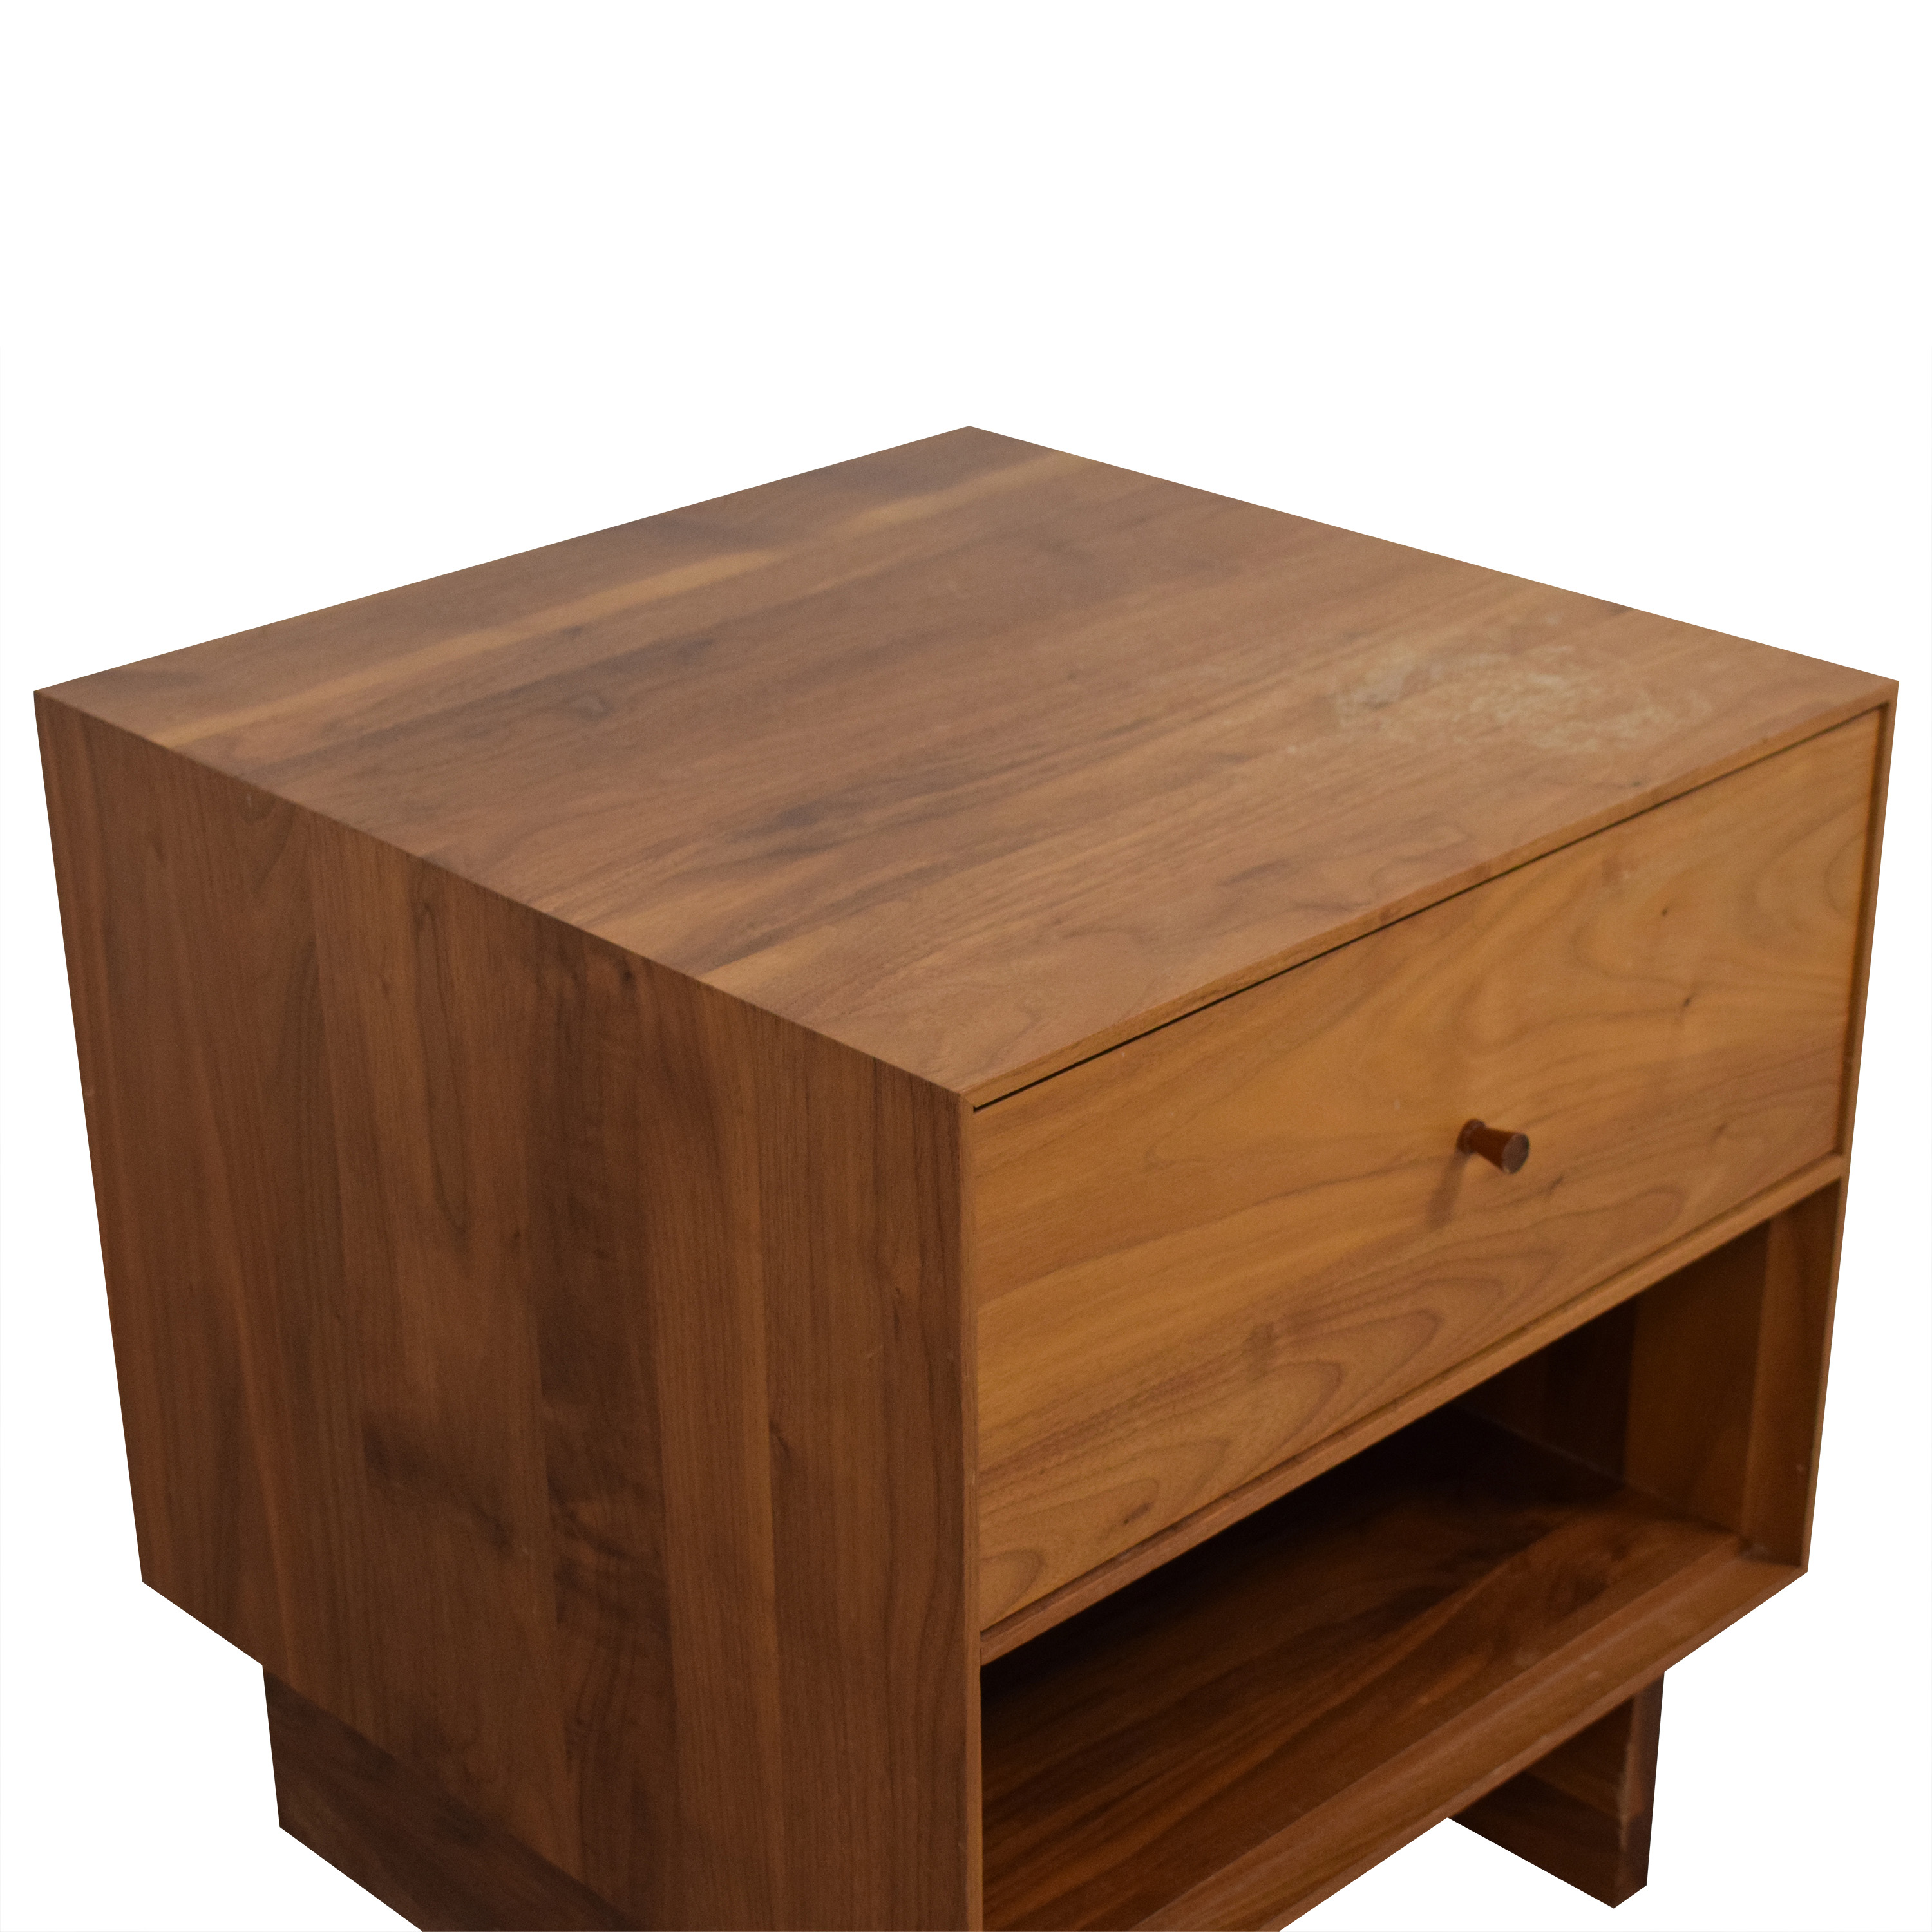 Room & Board Hudson One-Drawer Nightstand with Wood Base sale